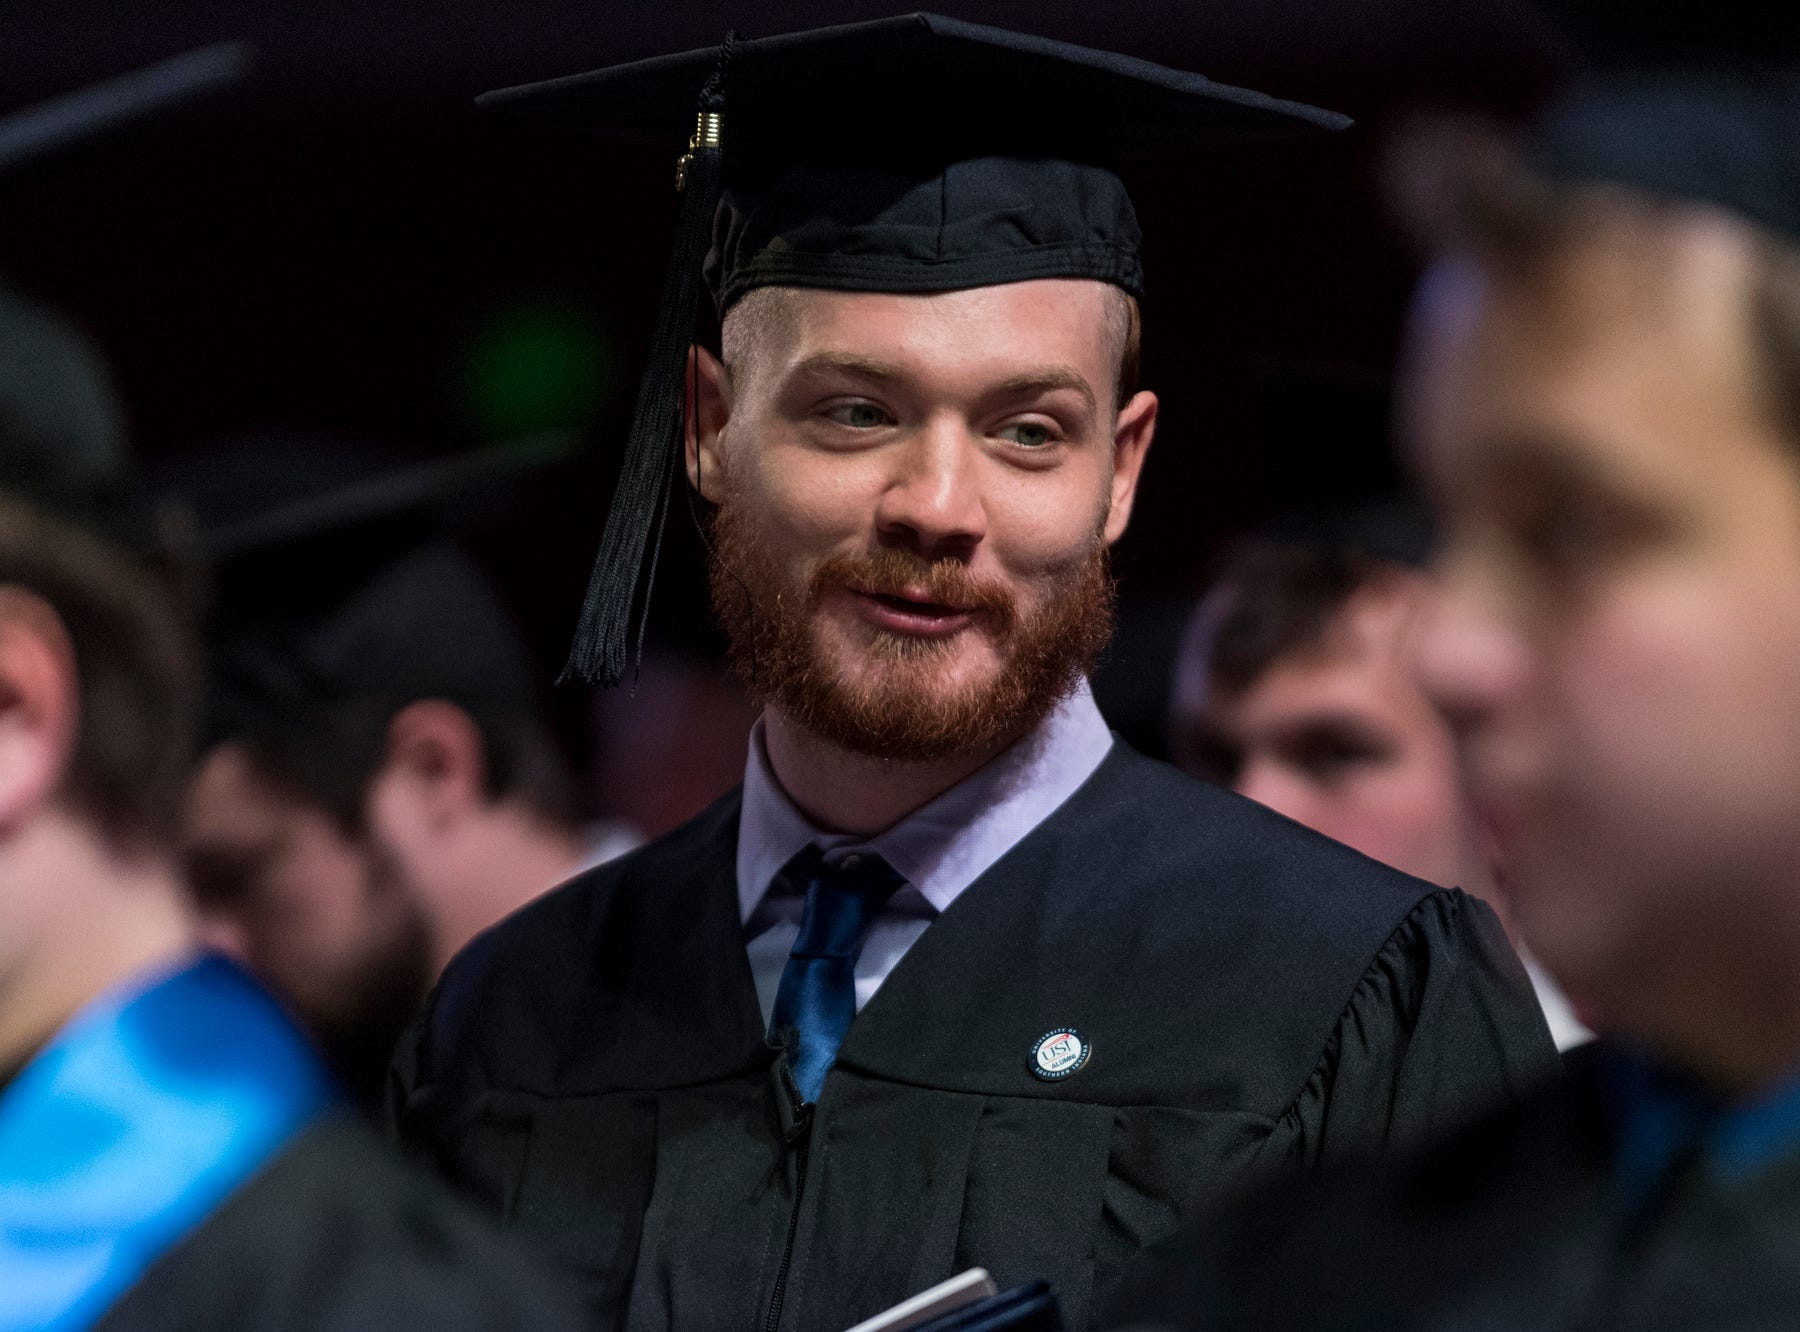 """Graduate Chase Hoehn of Mount Vernon sings the University of Southern Indiana's Alma Mater song """"Constant, Faithful, and True"""" during the fall commencement ceremony for the University of Southern Indiana's College of Liberal Arts and the Romain College of Business inside the school's Physical Activities Center in Evansville, Ind., Saturday, Dec. 8, 2018."""